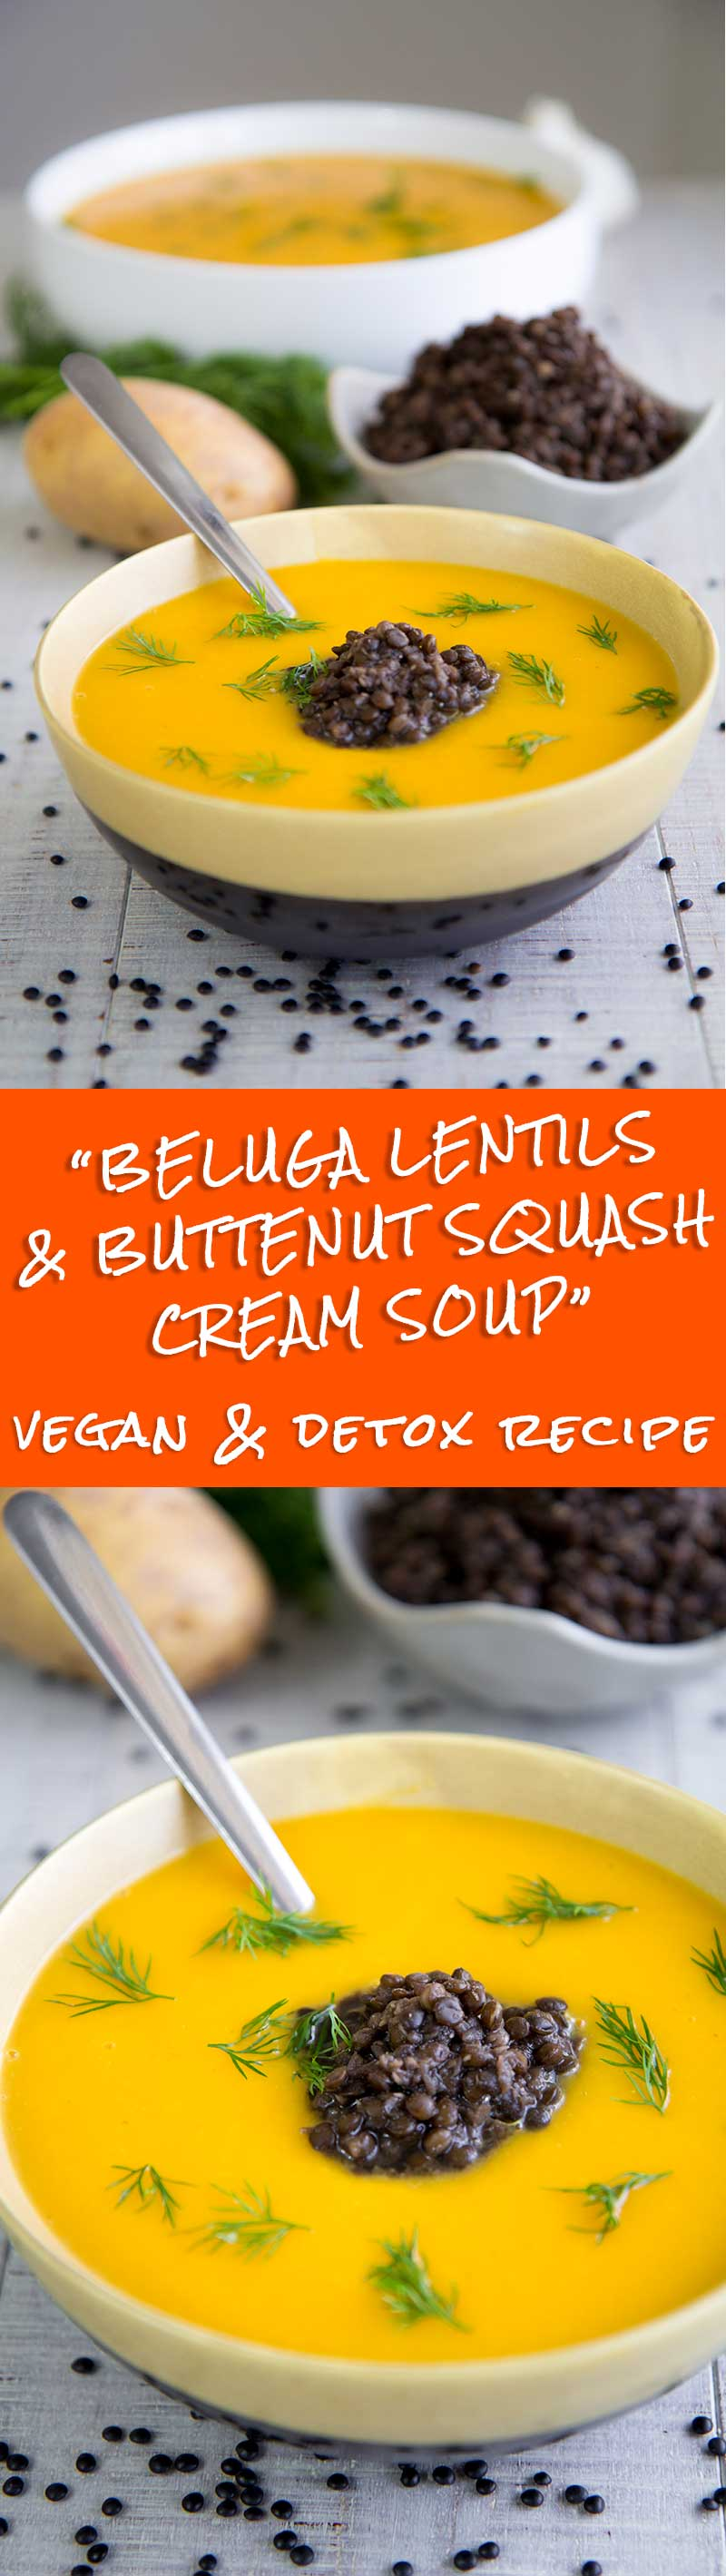 BUTTERNUT SQUASH SOUP with Beluga lentils - vegan and detox recipe